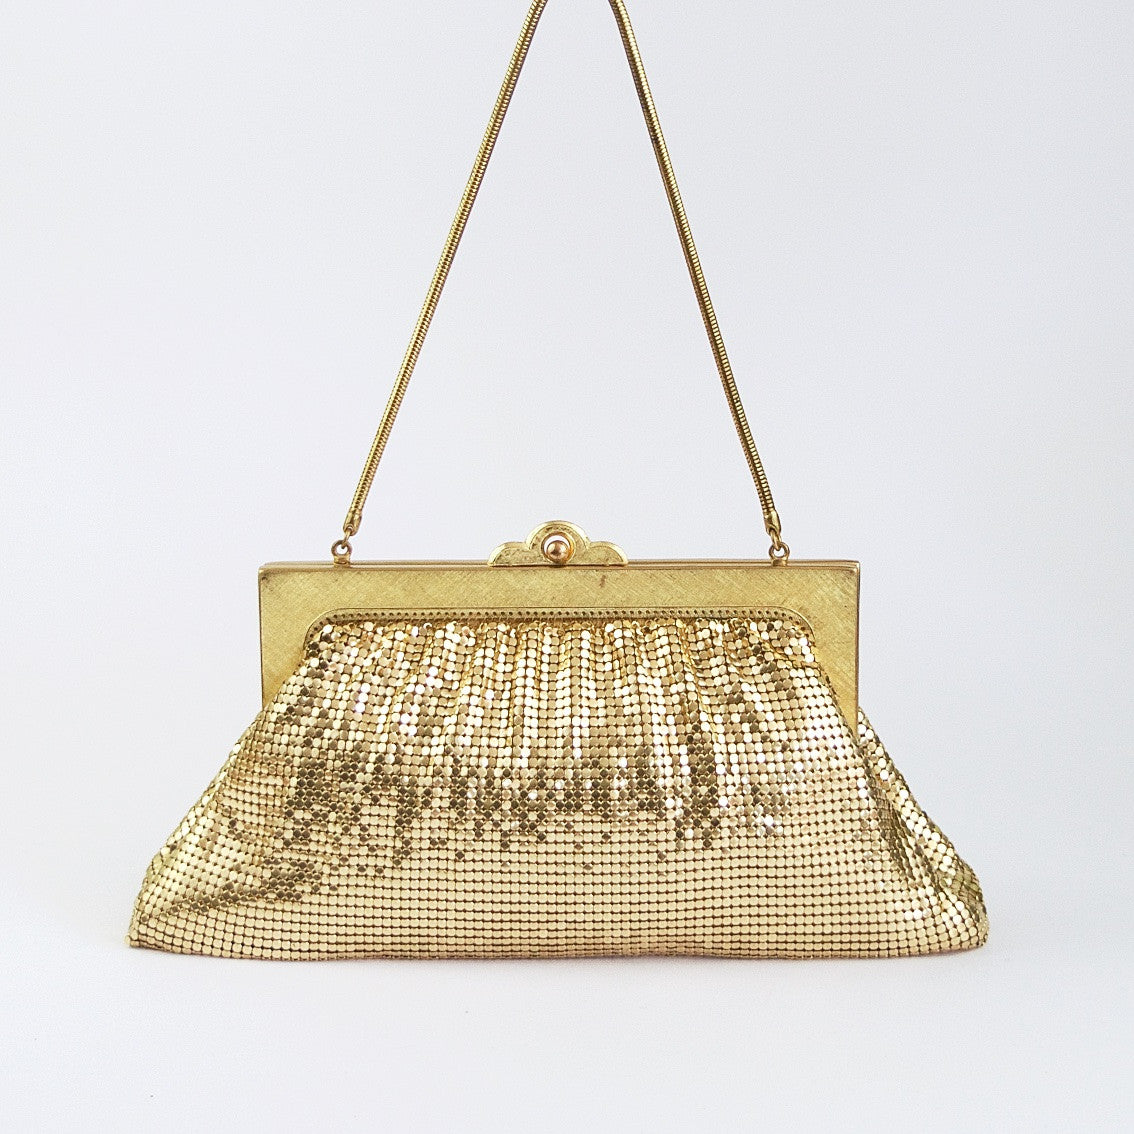 Vintage gold metal mesh evening bag by Oroton